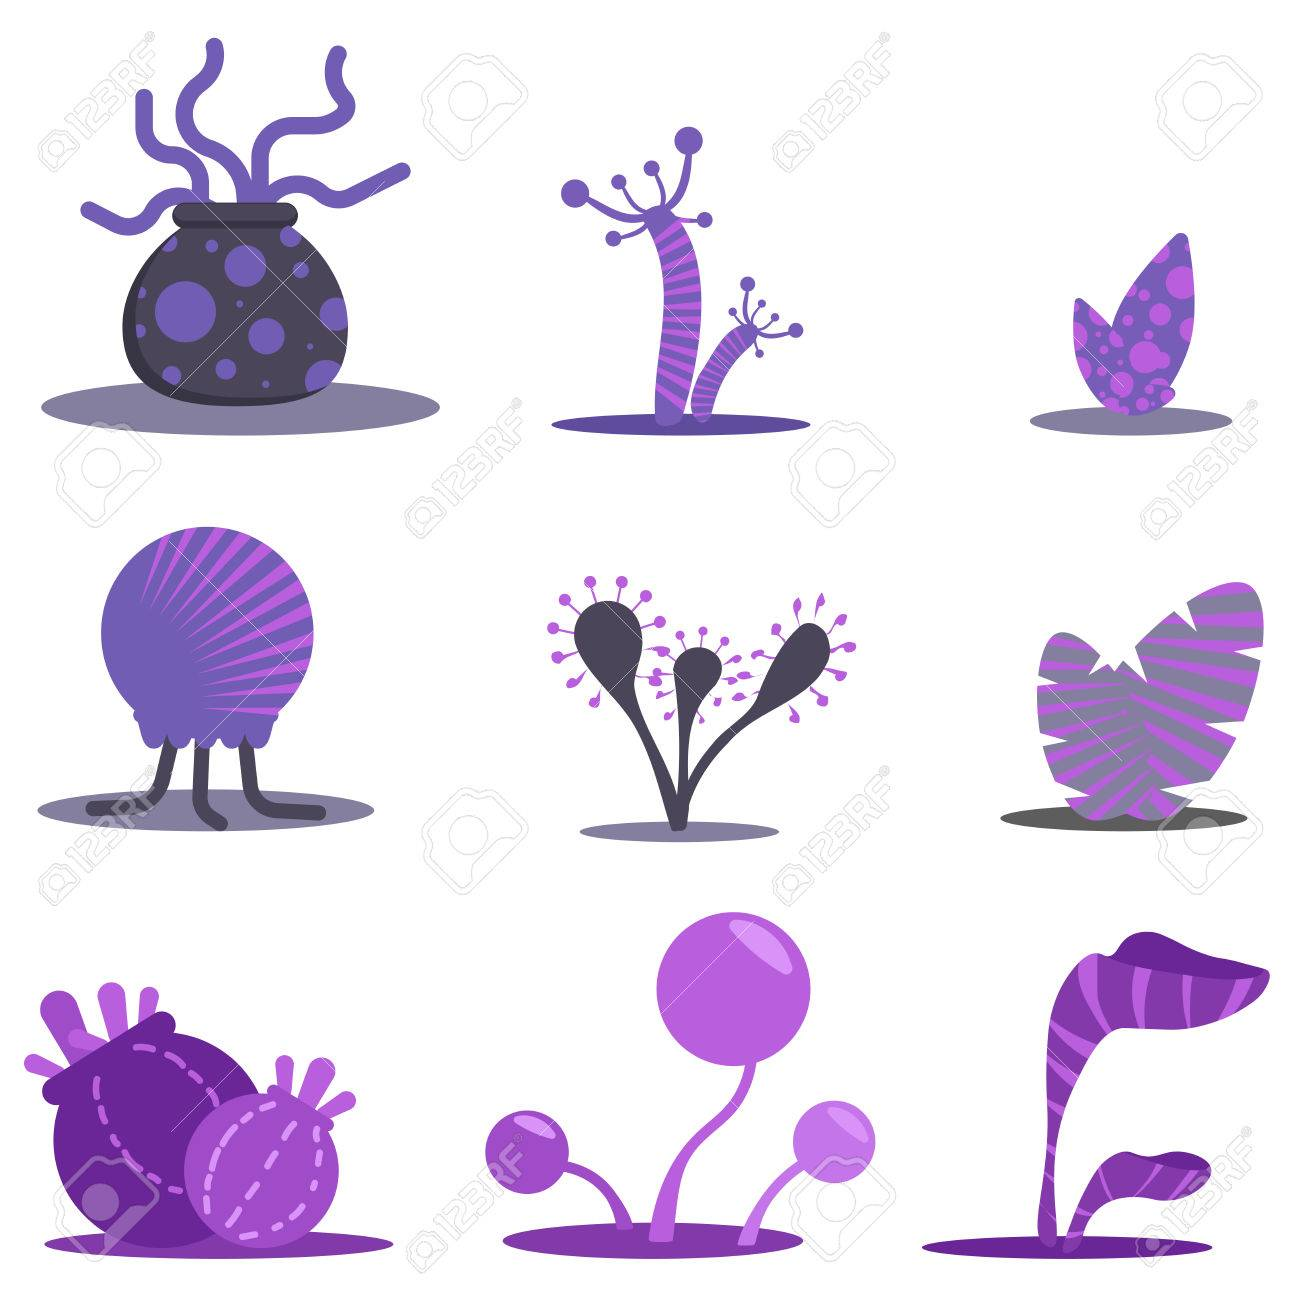 Alien Plants Clip Art